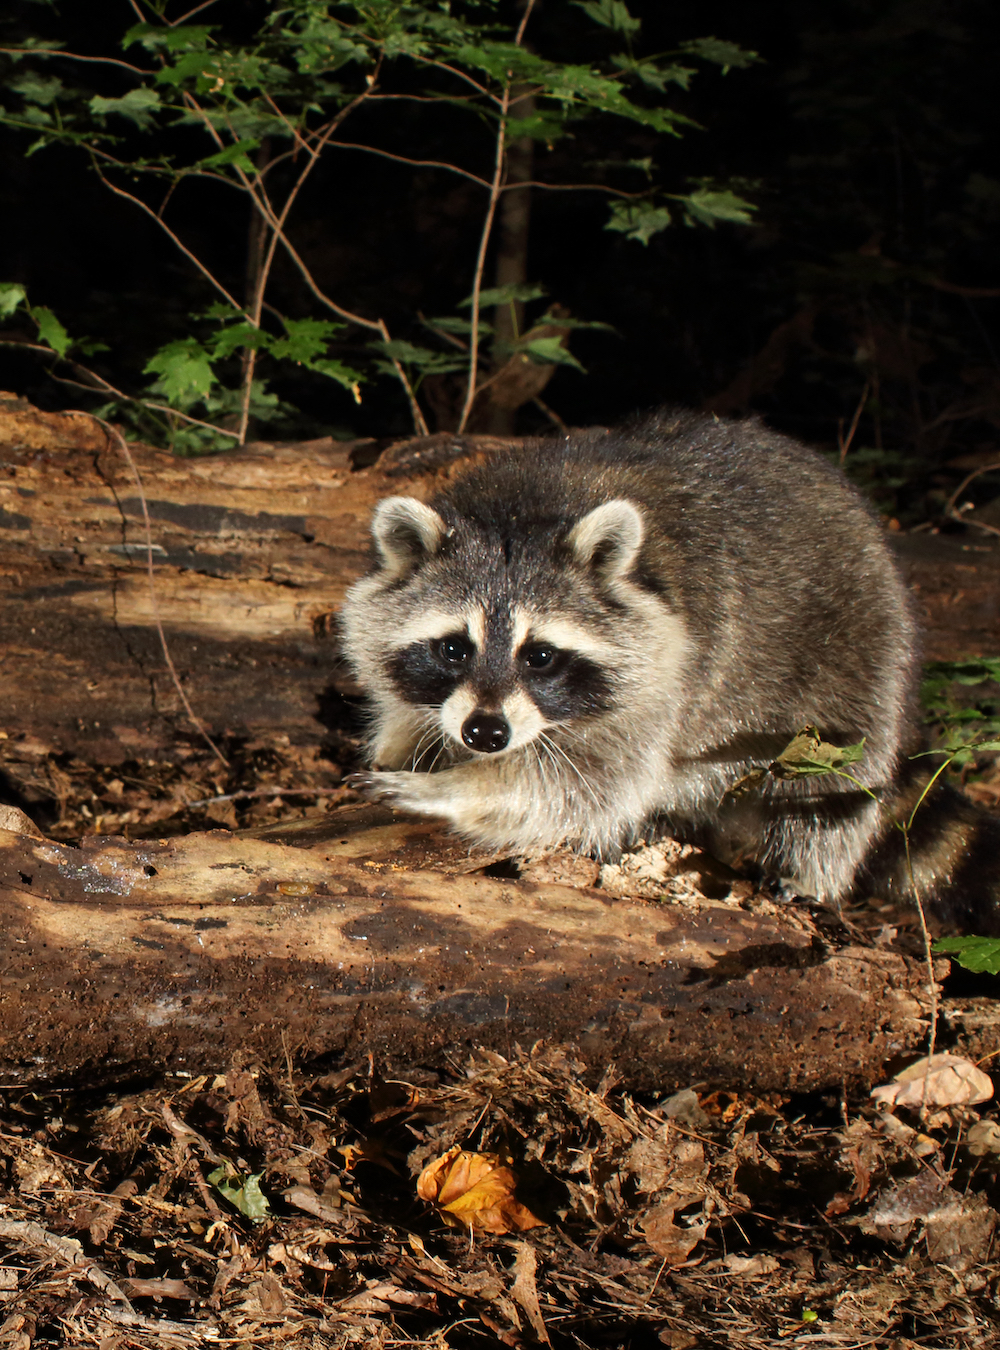 A black, gray, and white raccoon pauses while foraging amongst a fallen decaying log at night.